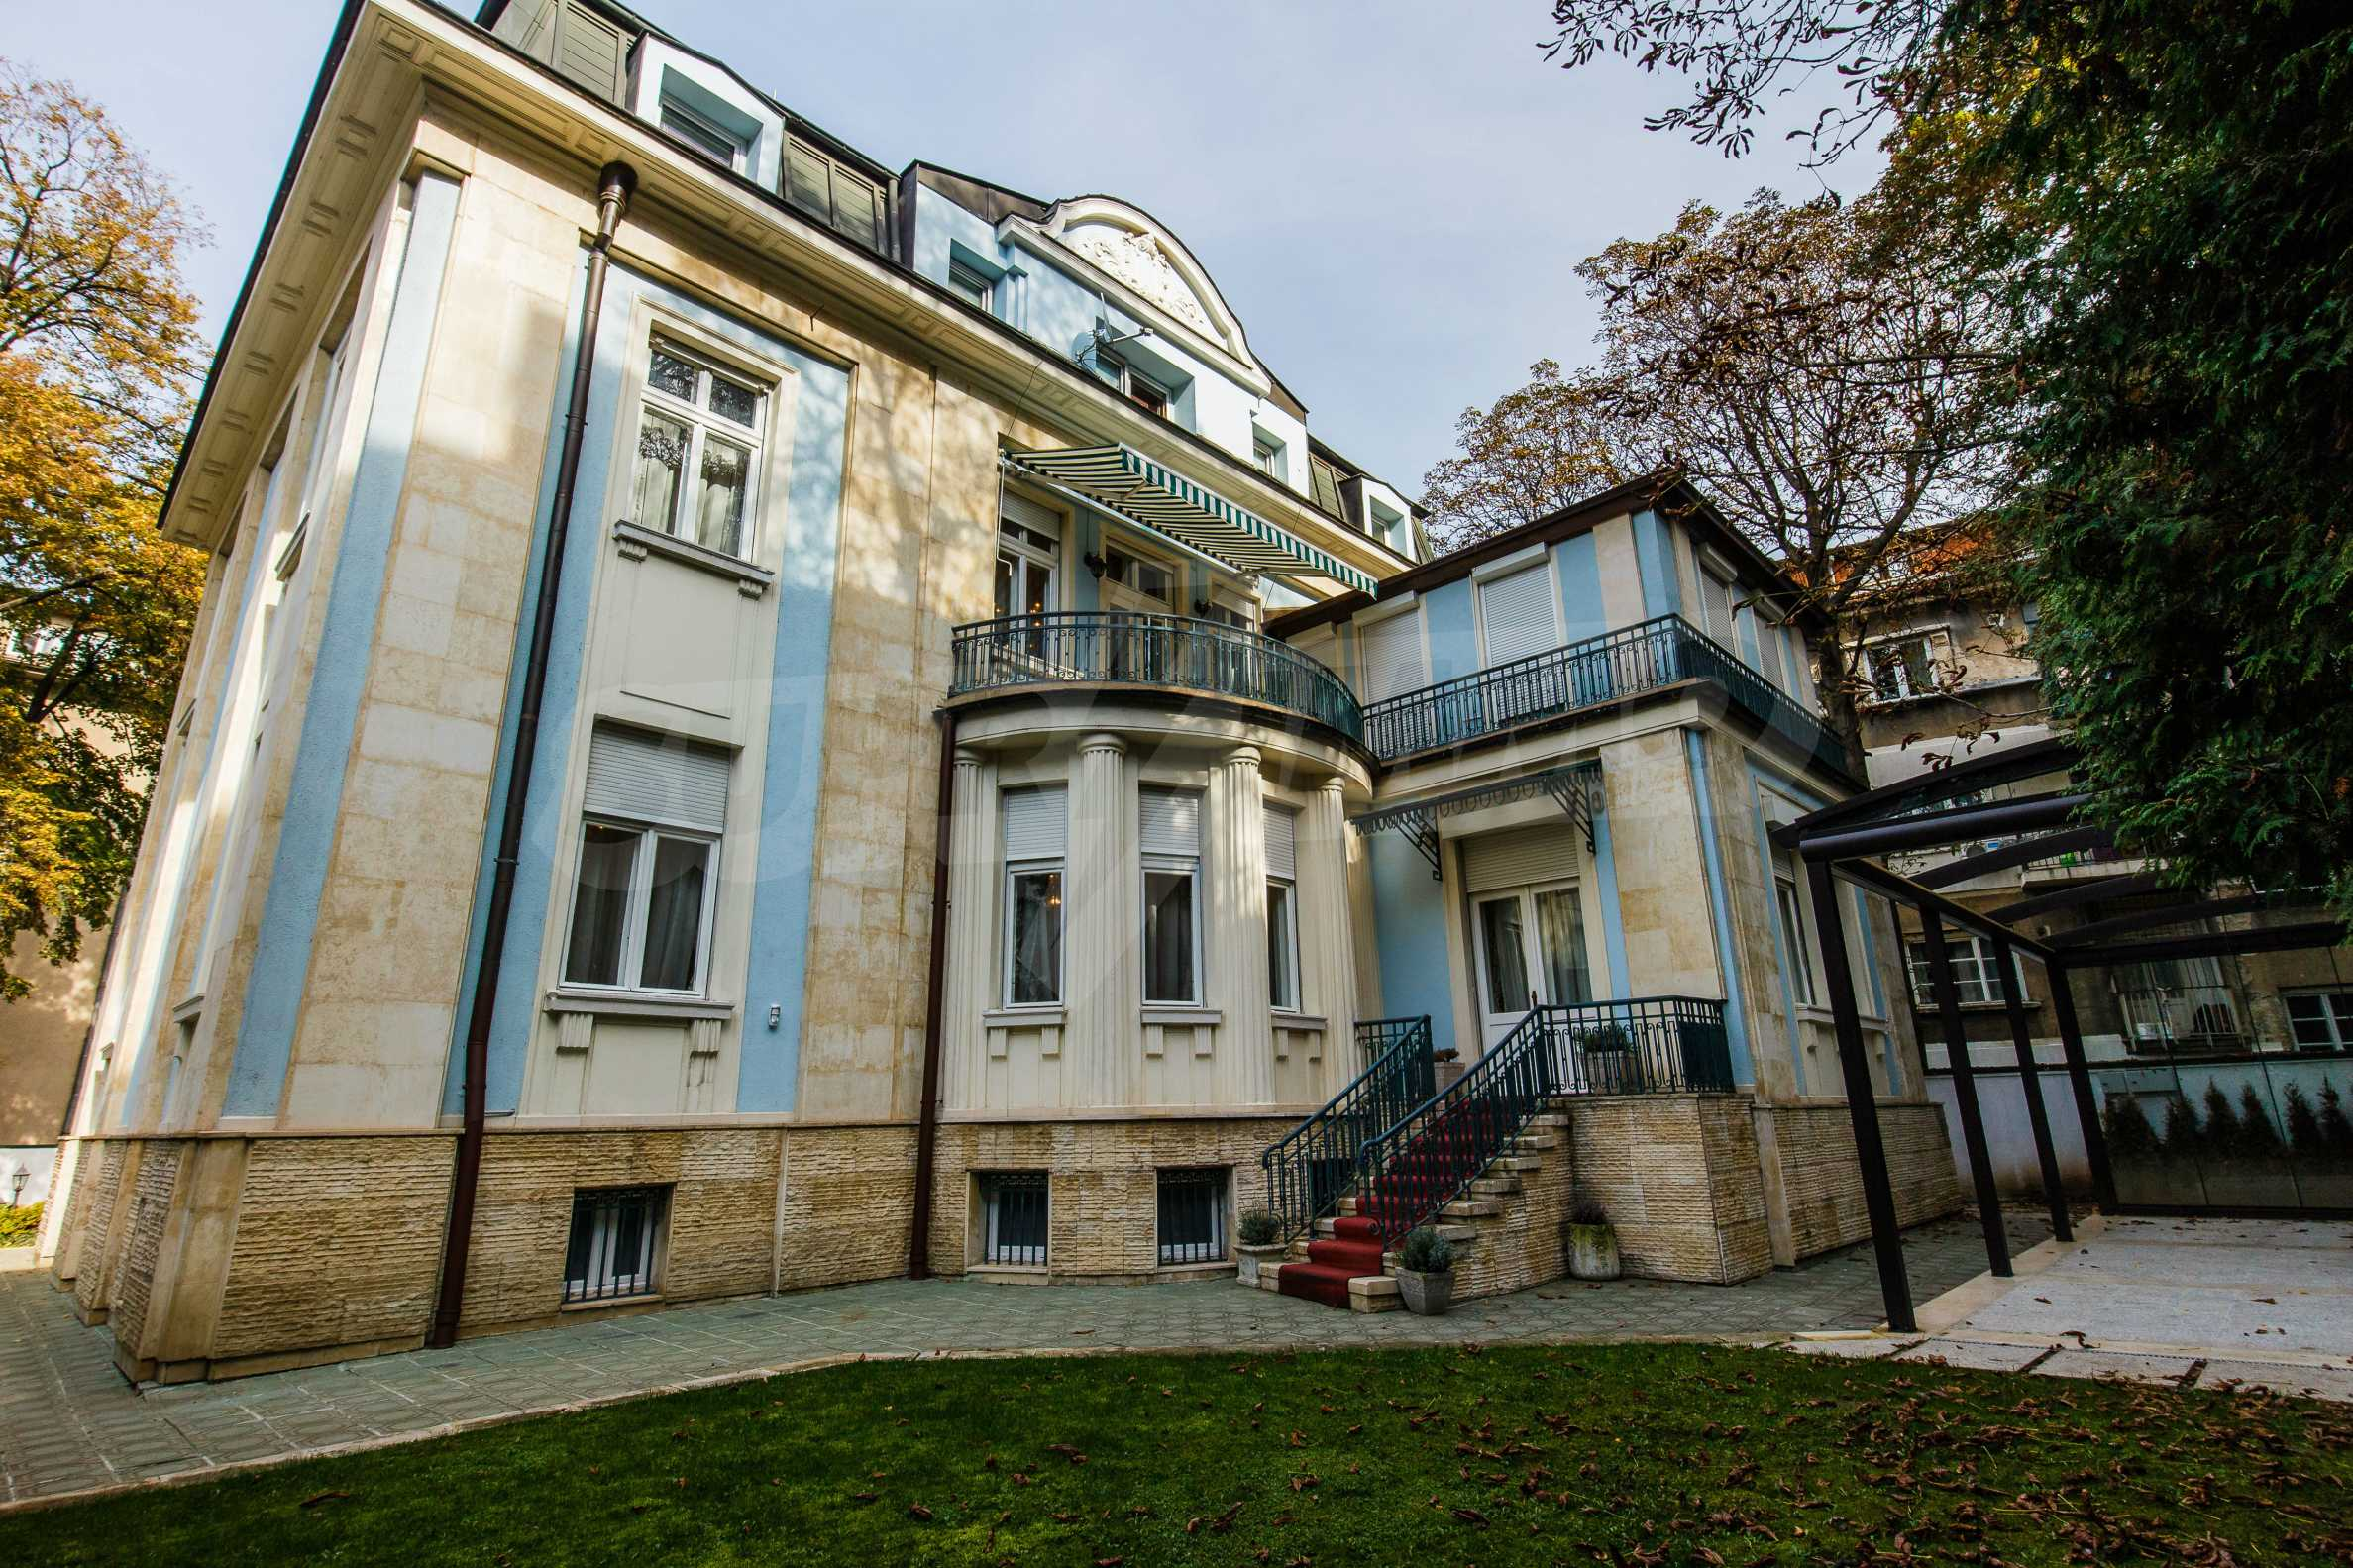 House for sale in Sofia, Bulgaria - Exquisite property in central Sofia.